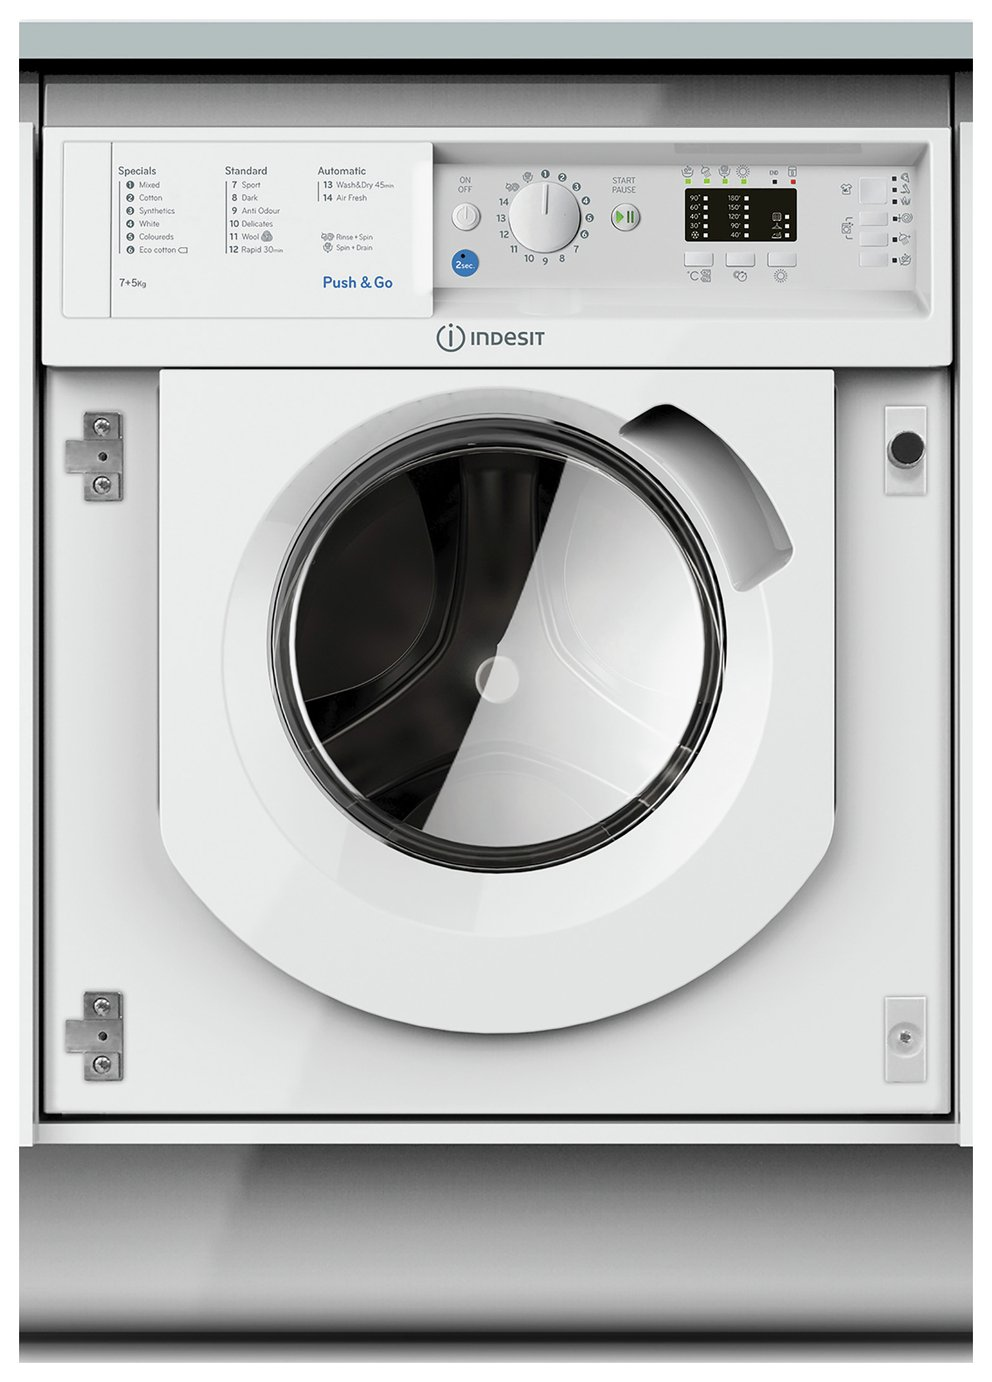 Indesit BIDIL7125 7KG / 5KG 1200 Spin Washer Dryer - White